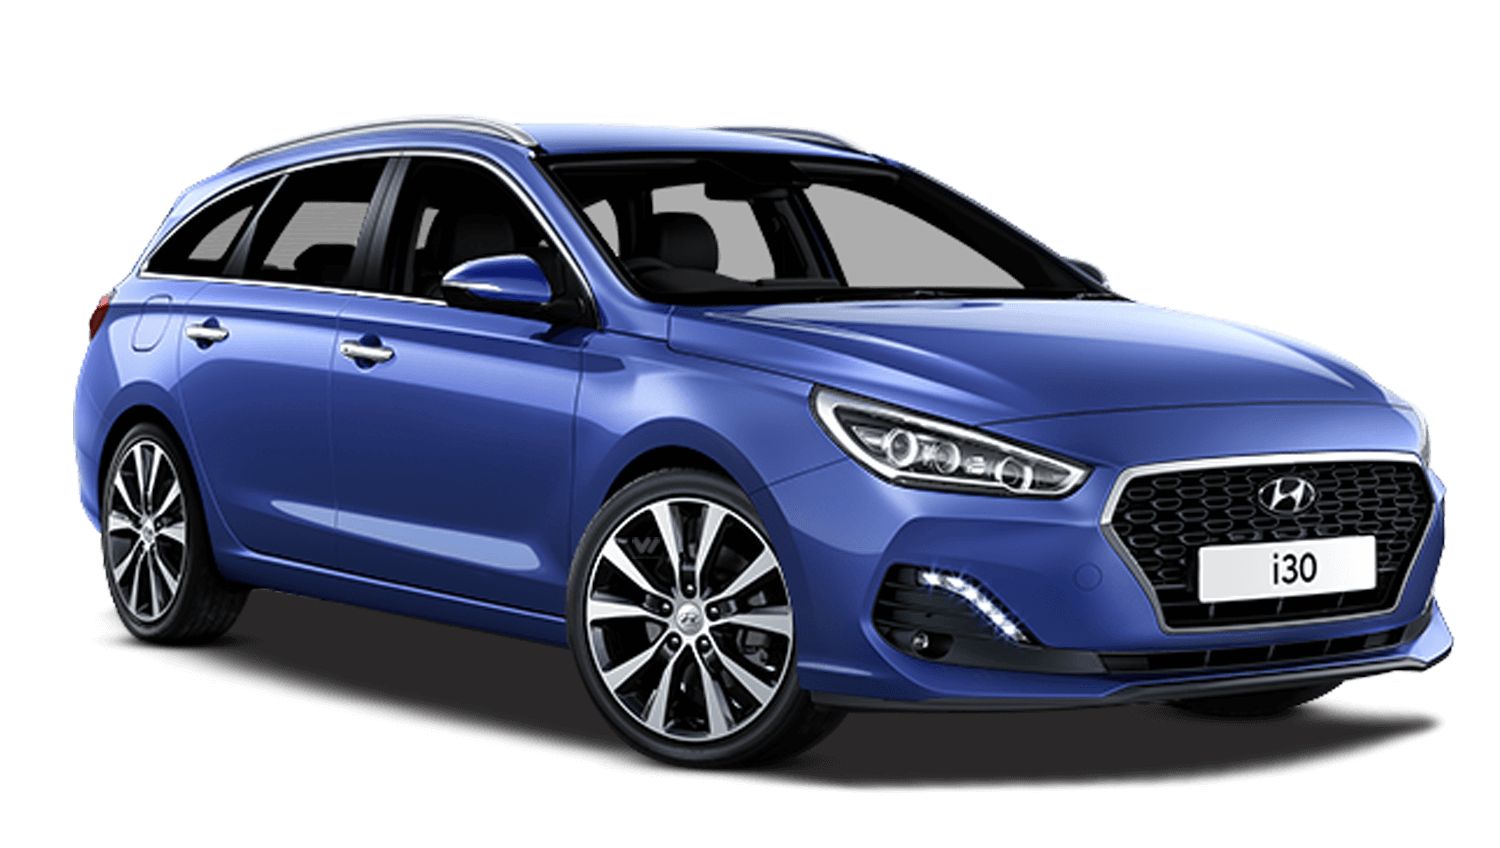 Champion Blue Hyundai I30 Tourer